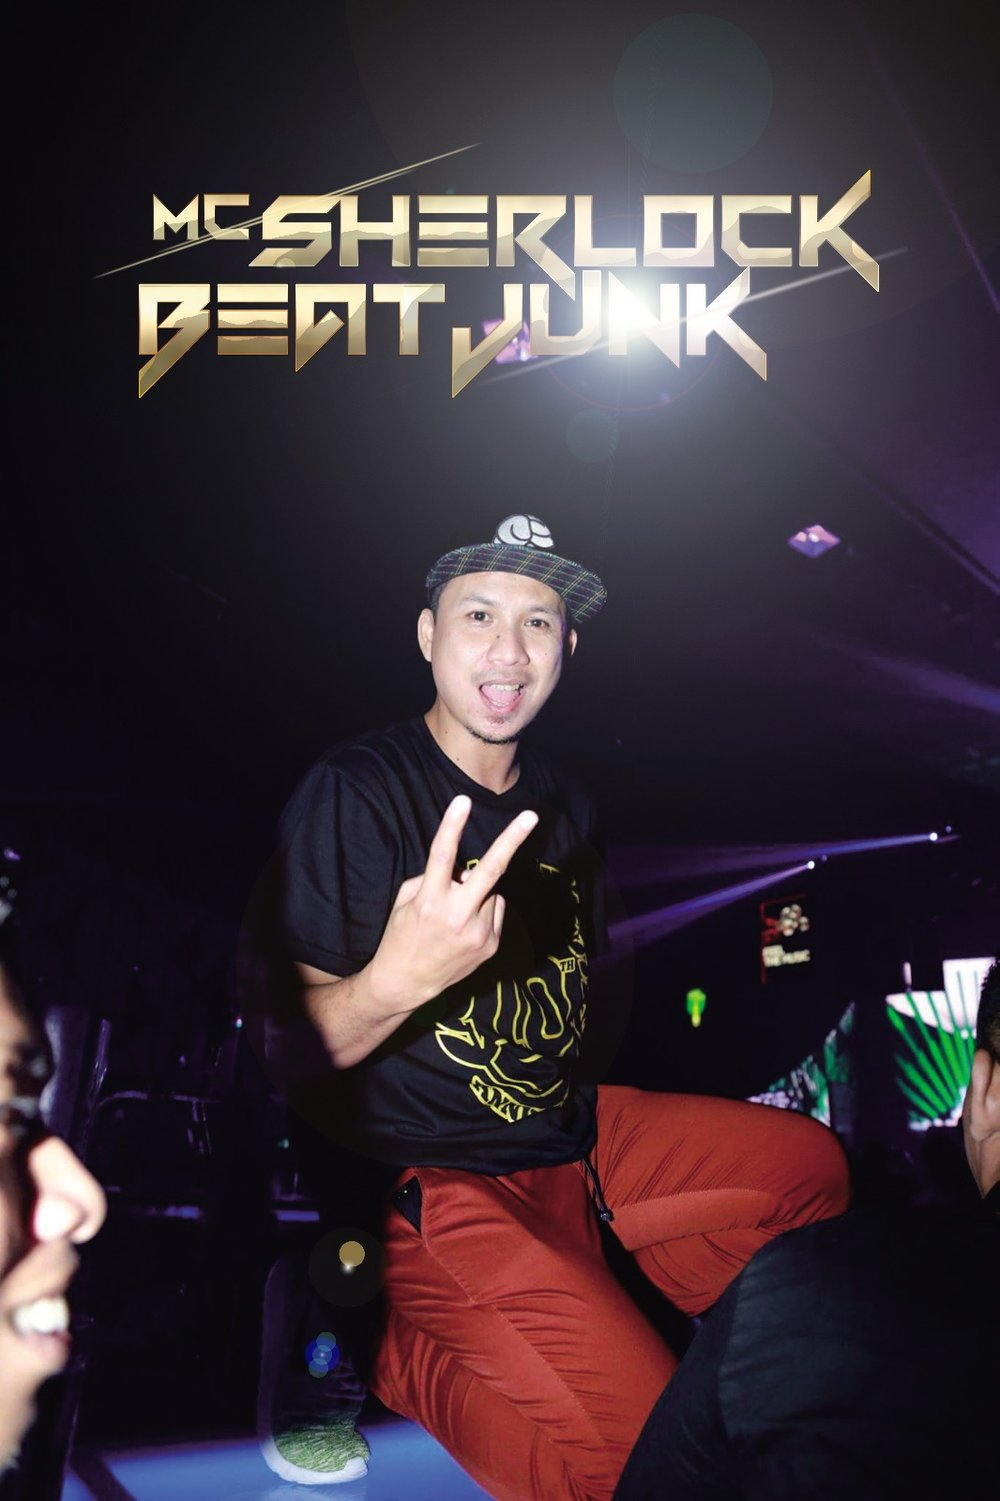 ARIE SHERLOCK BEATJUNK Resident MC @ Royal Club, Makassar